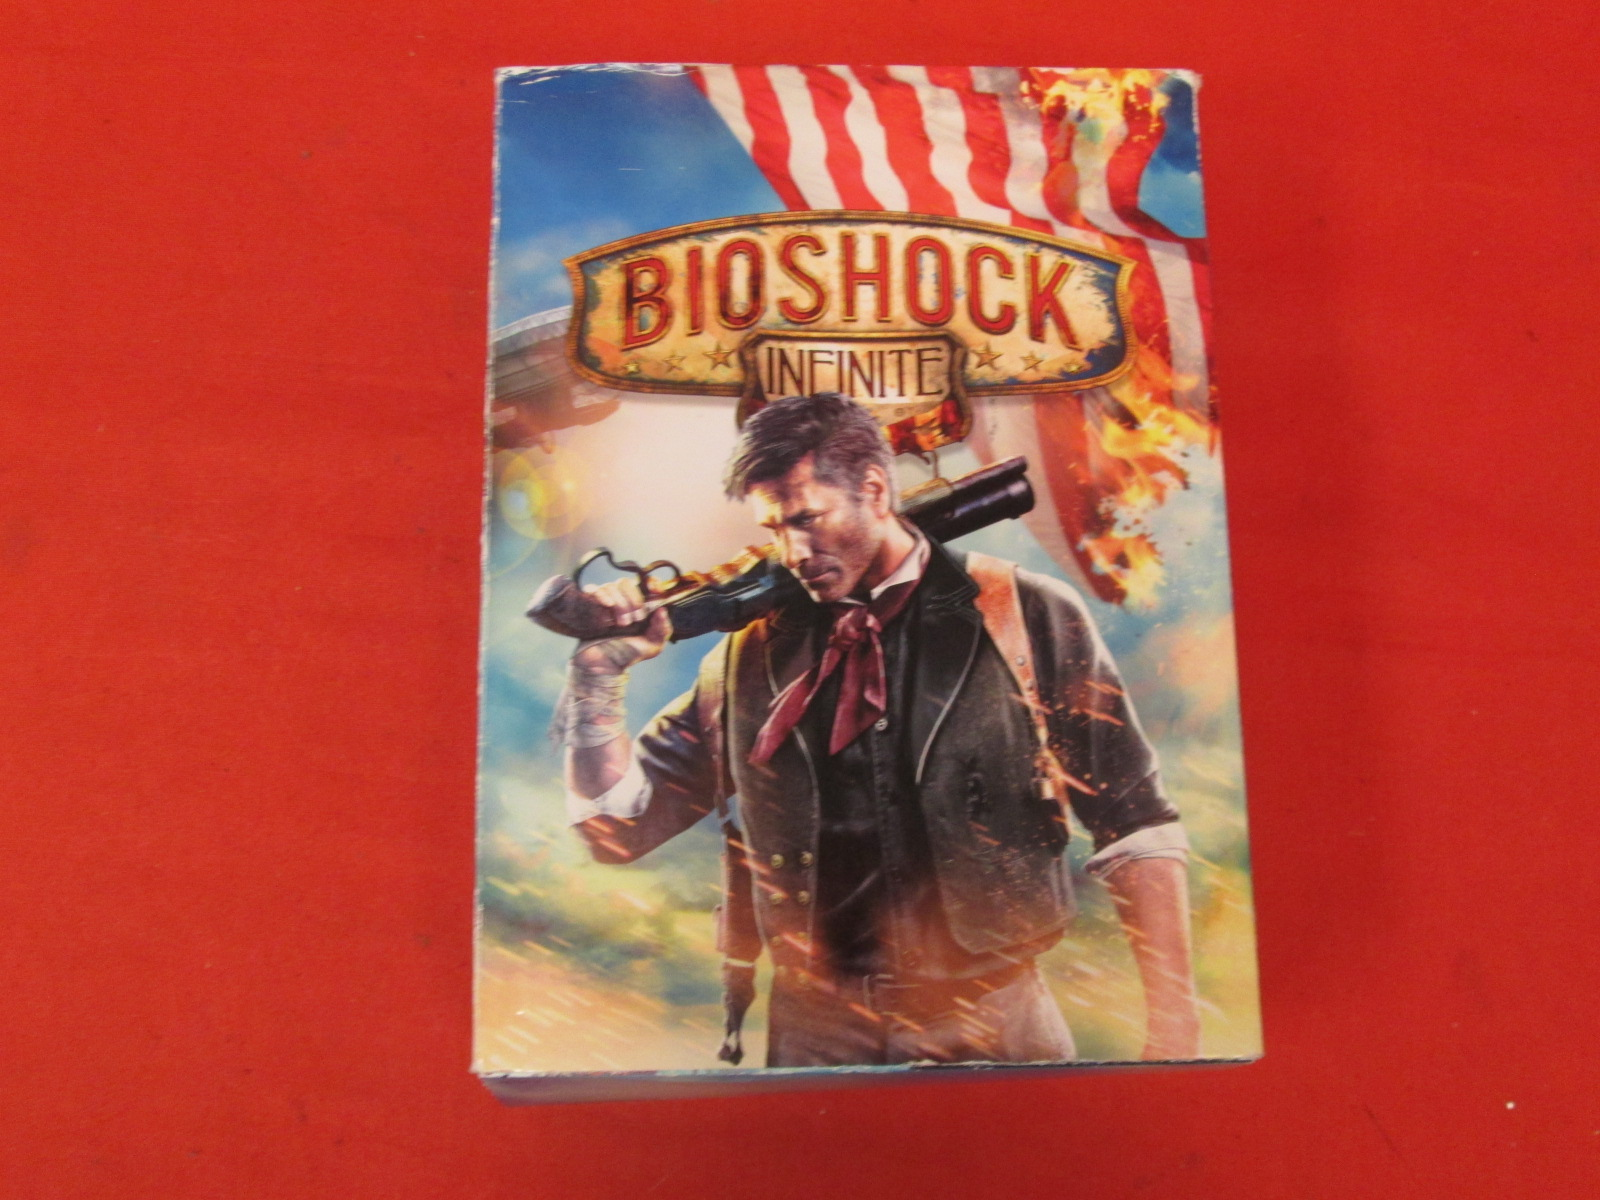 Bioshock Infinite: Premium Edition For Xbox 360 Incomplete